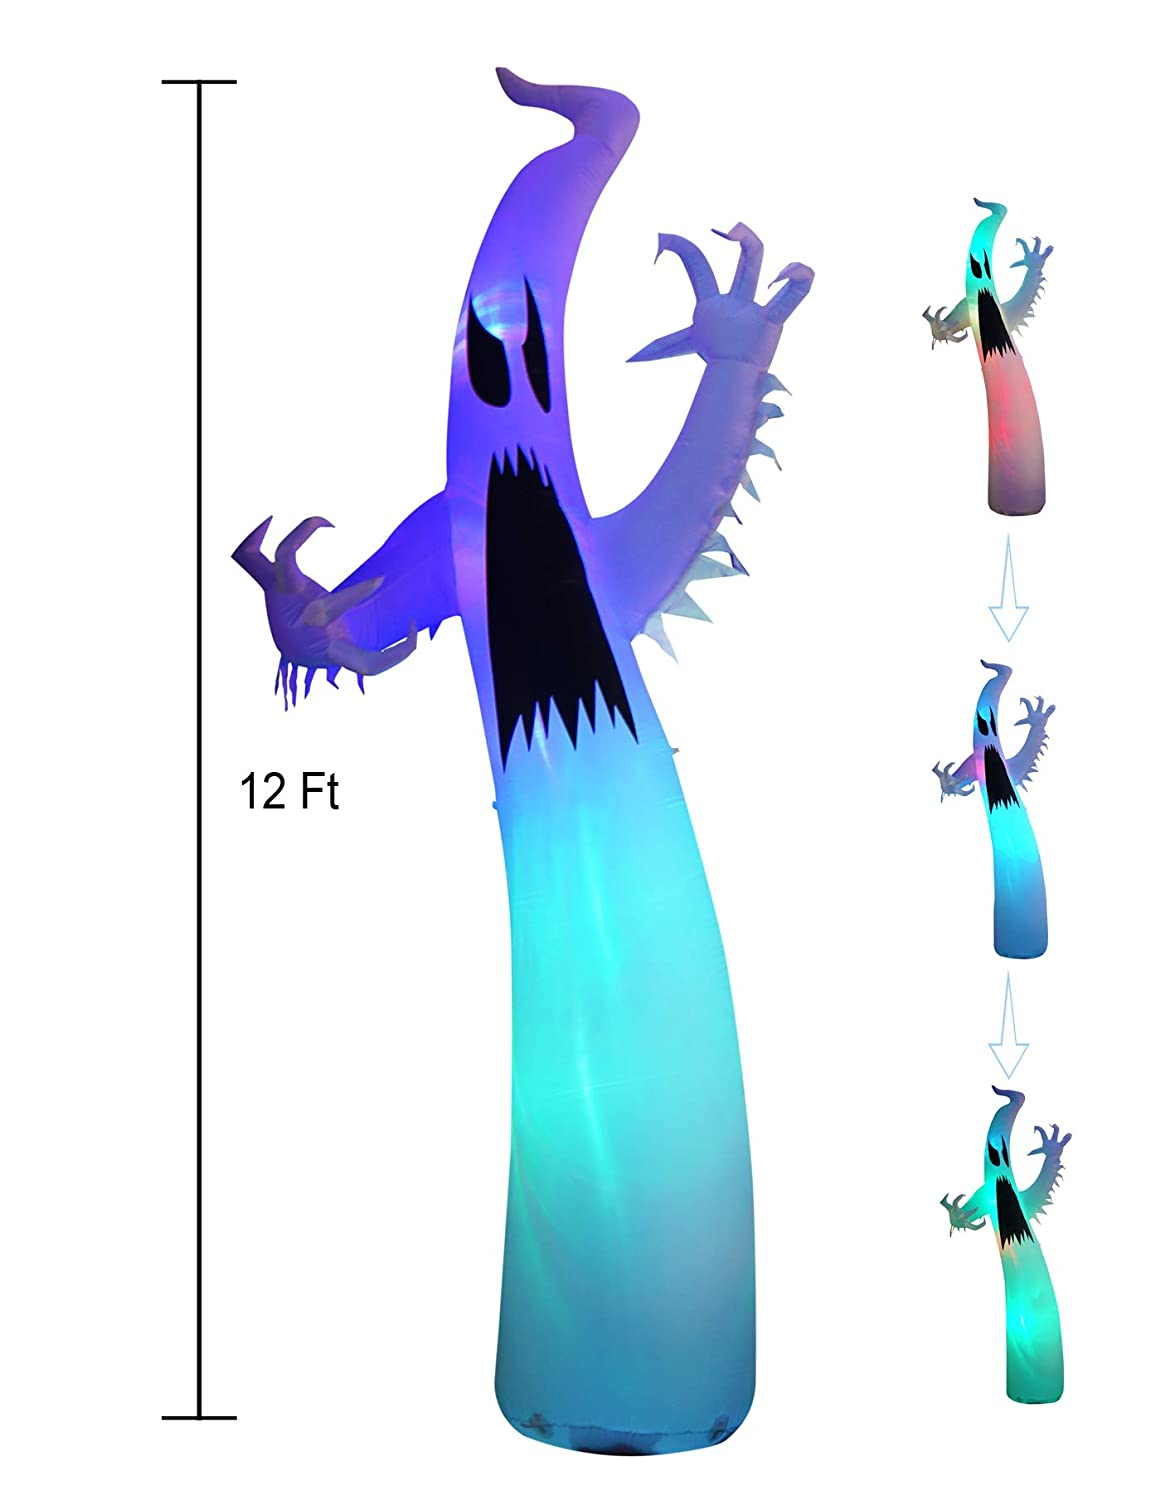 SEASONBLOW 12 Ft Inflatable Portable Halloween Terrible Ghost Indoor and Outdoor Decoration CHH1605B-360